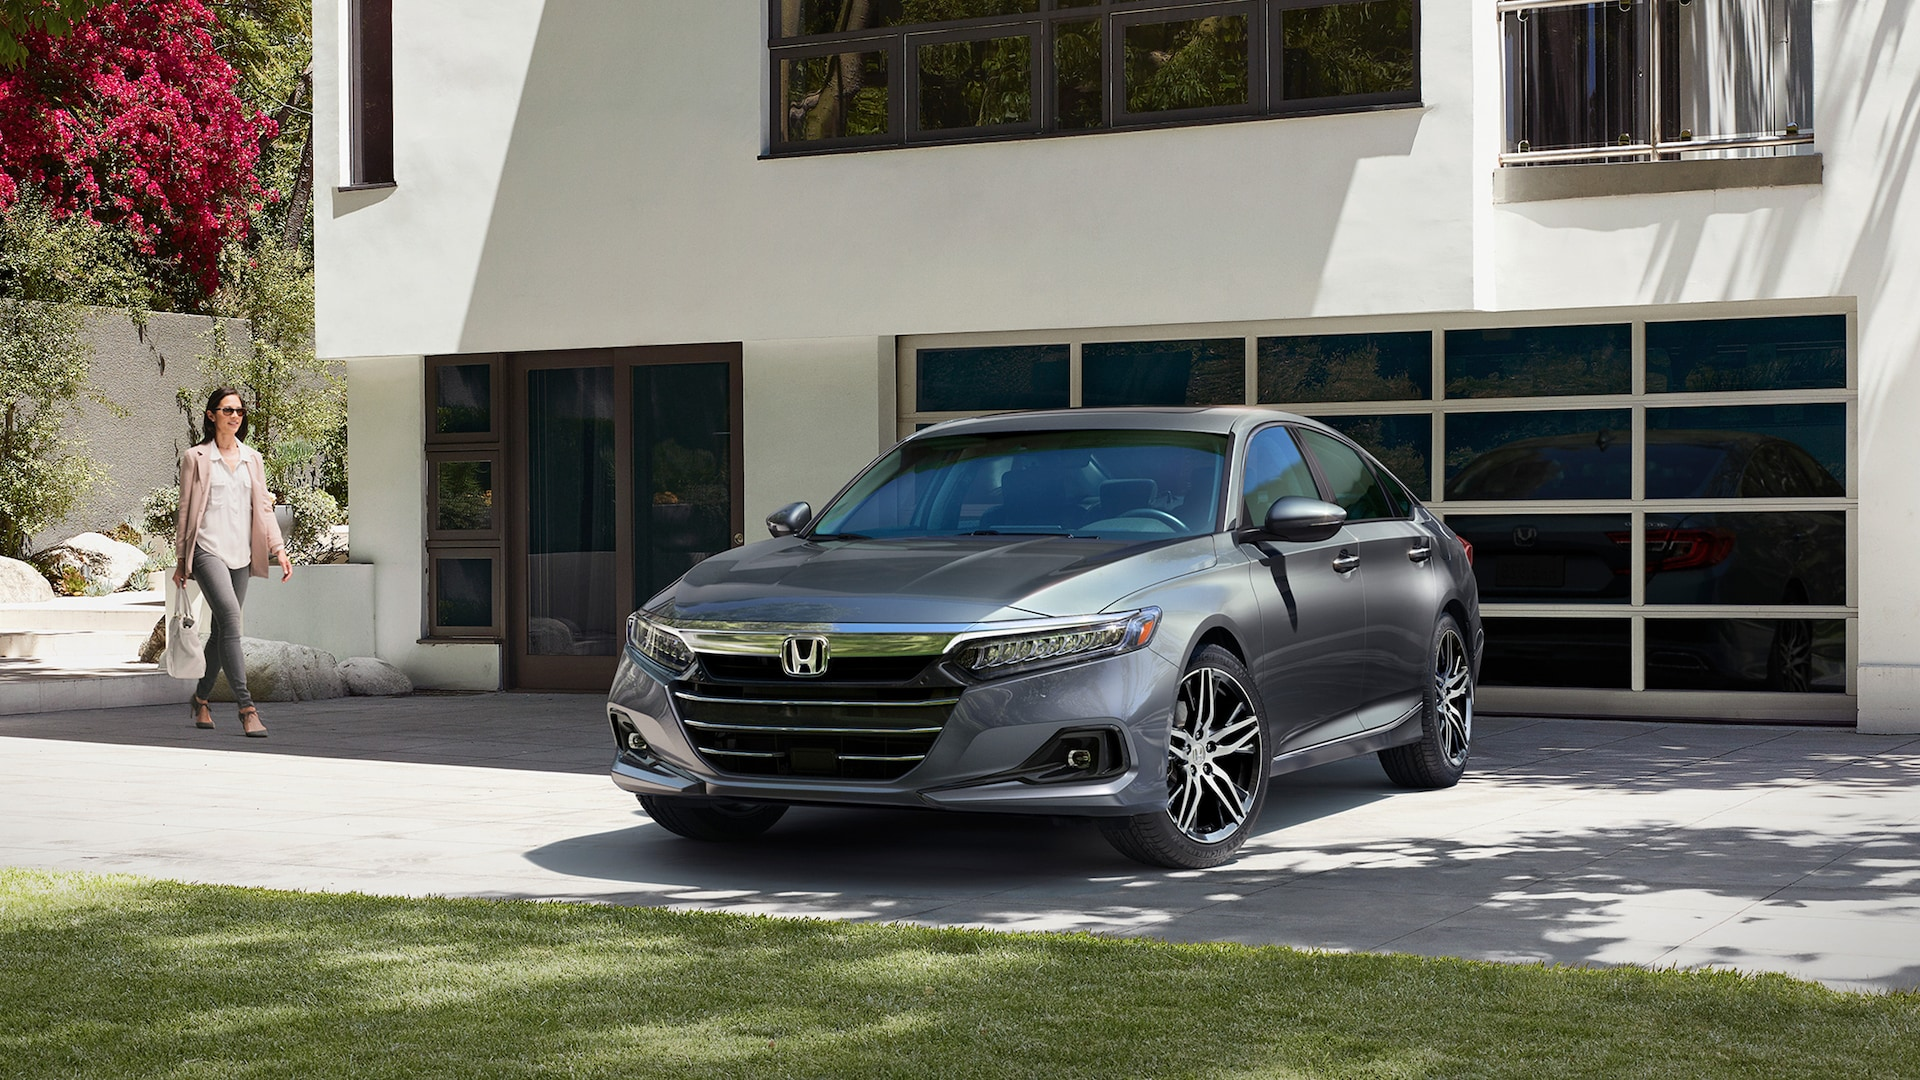 2021 Honda Accord Touring 2.0T in Modern Steel Metallic, parked in front of modern home.